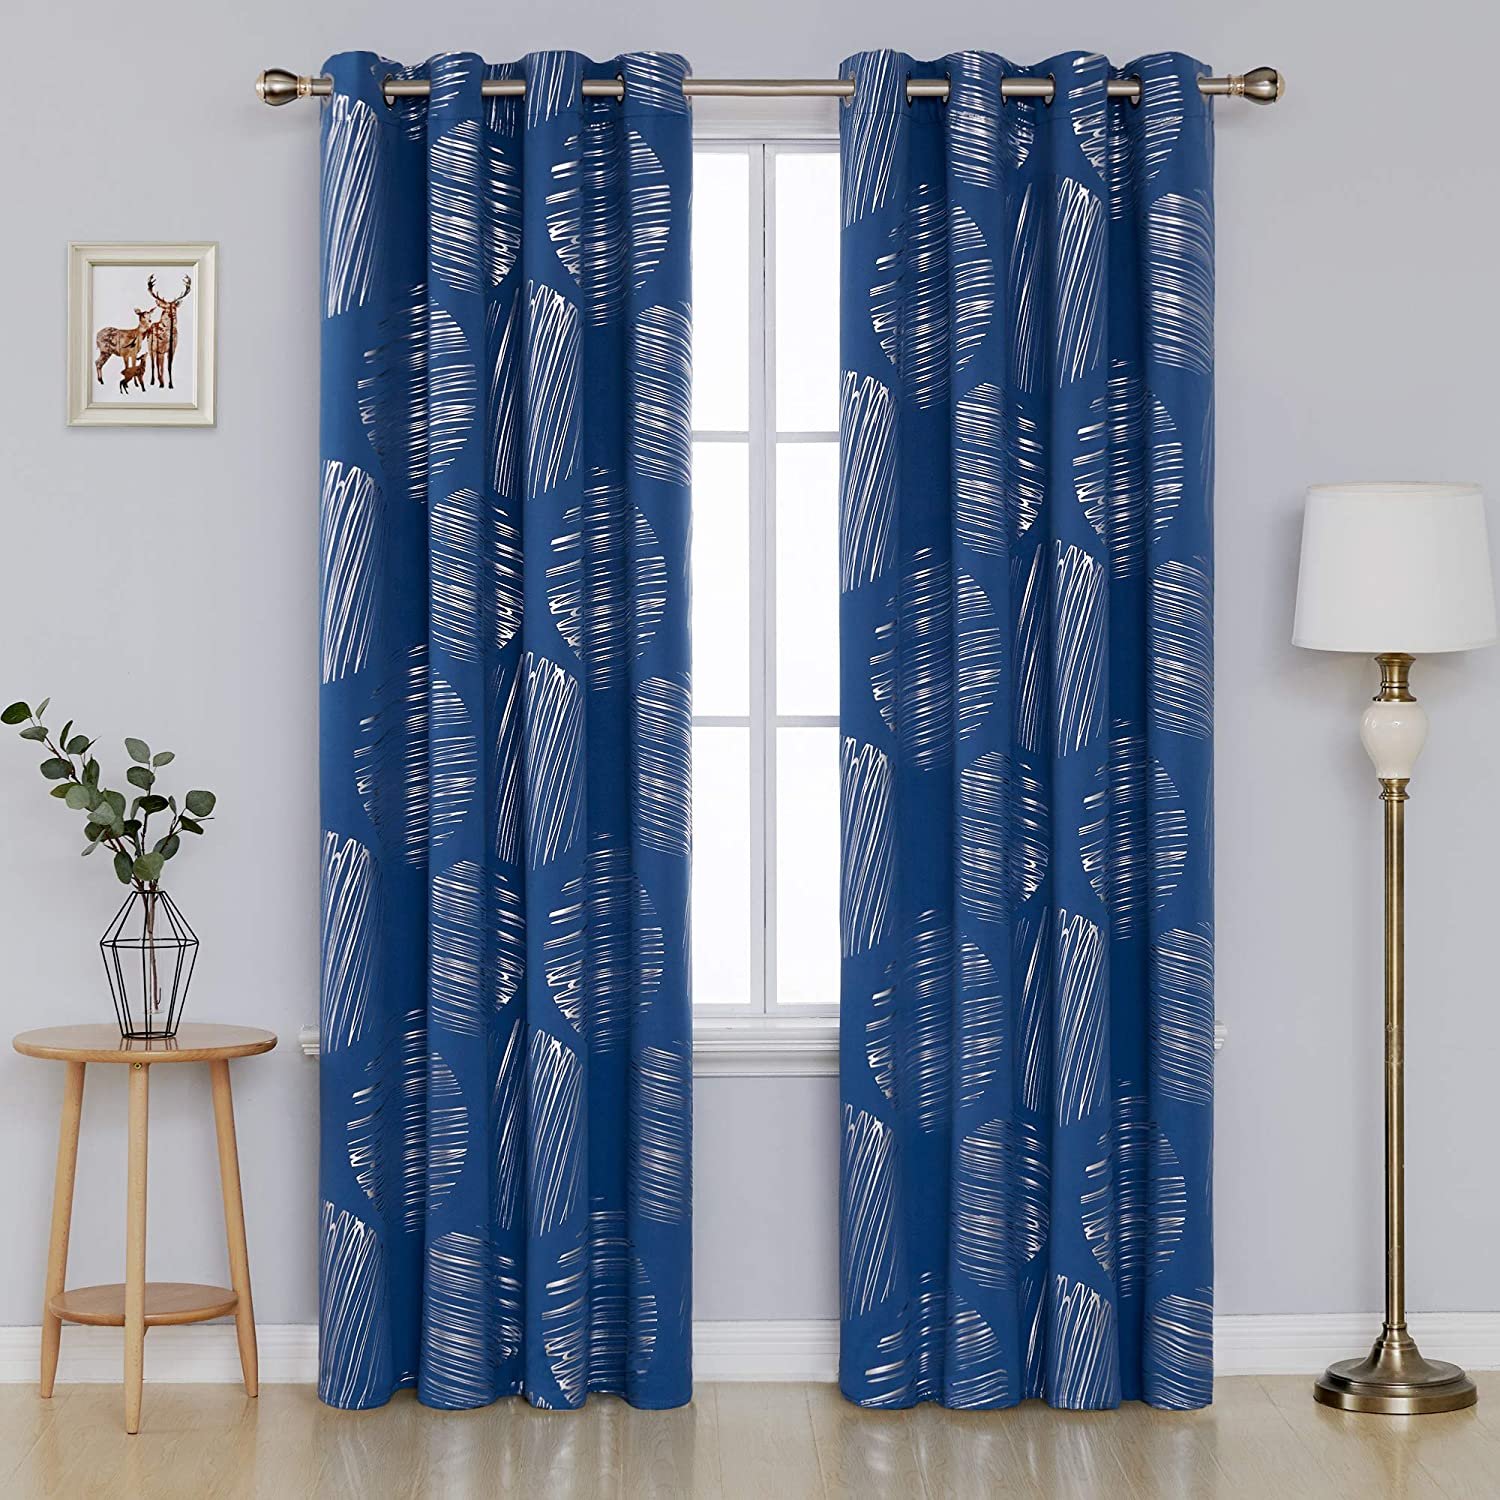 Amazon.com: Deconovo Home Decor Foil Print Blackout Curtains With Grommets  Thermal Insulated Drapes For Sliding Glass Doors 52 X 84 Inch Dark Blue 2  Panels: ...